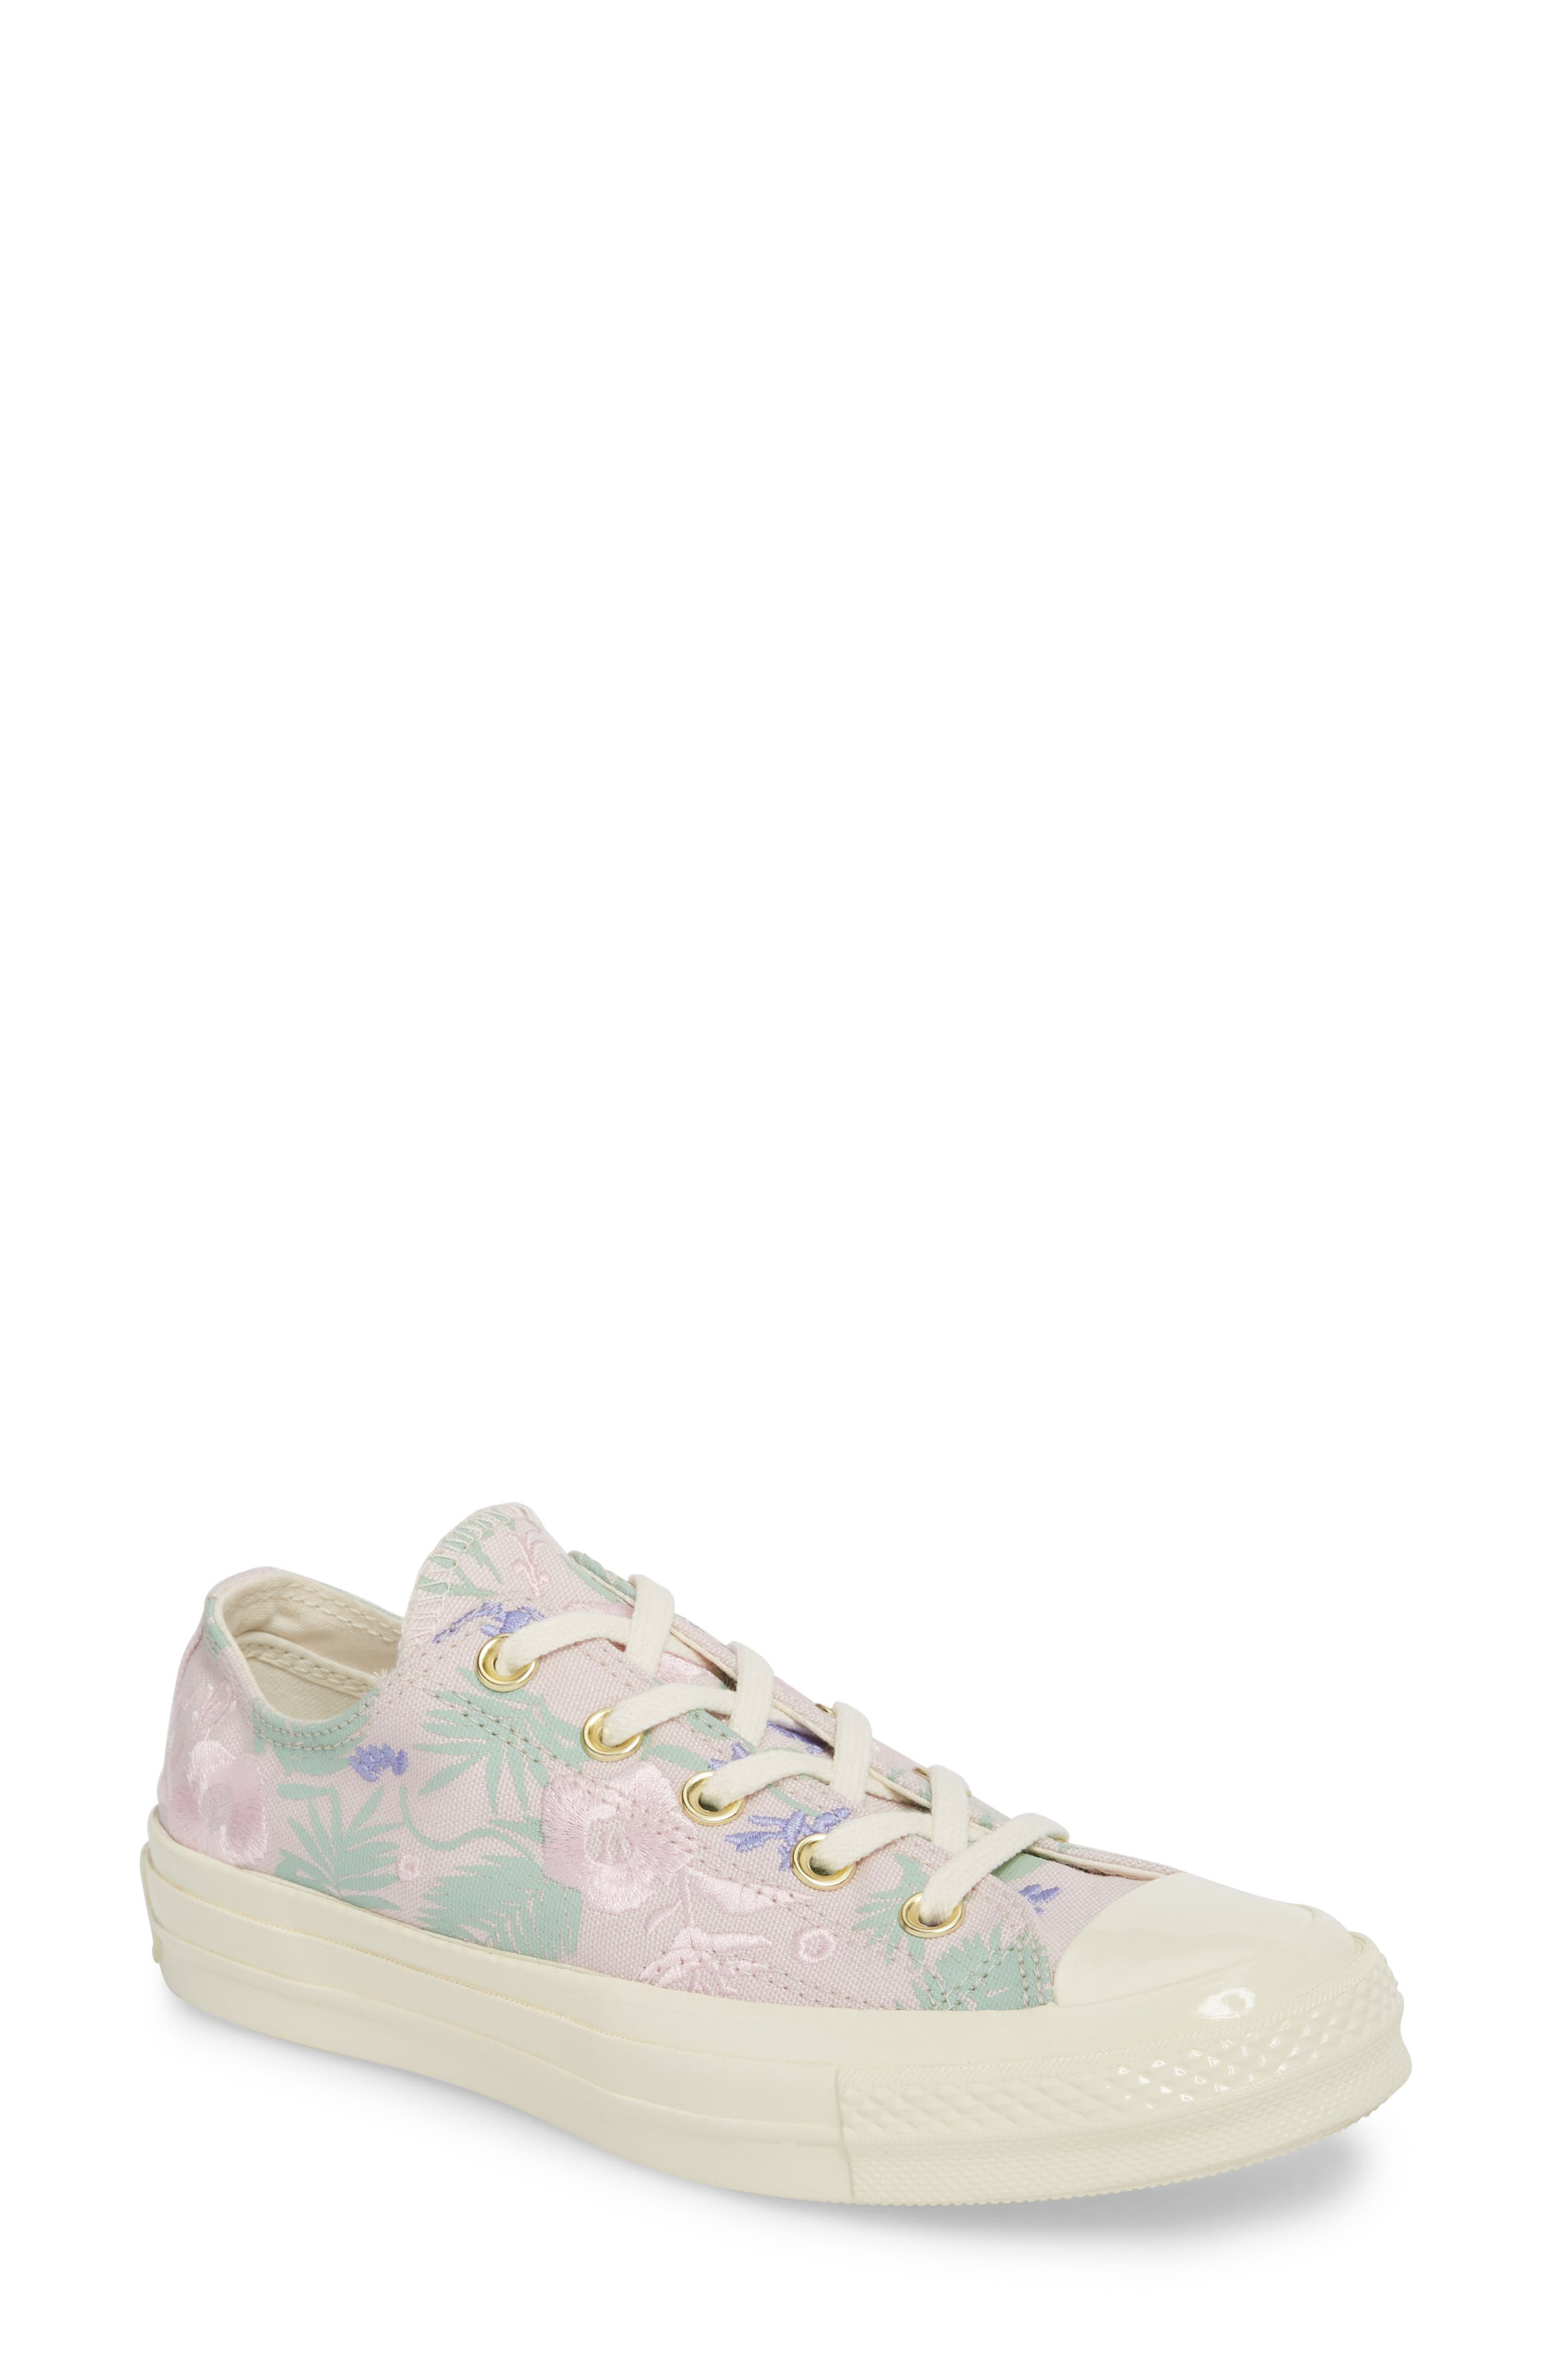 Chuck Taylor<sup>®</sup> All Star<sup>®</sup> 70 Palm Print Low Top Sneaker,                         Main,                         color, 658